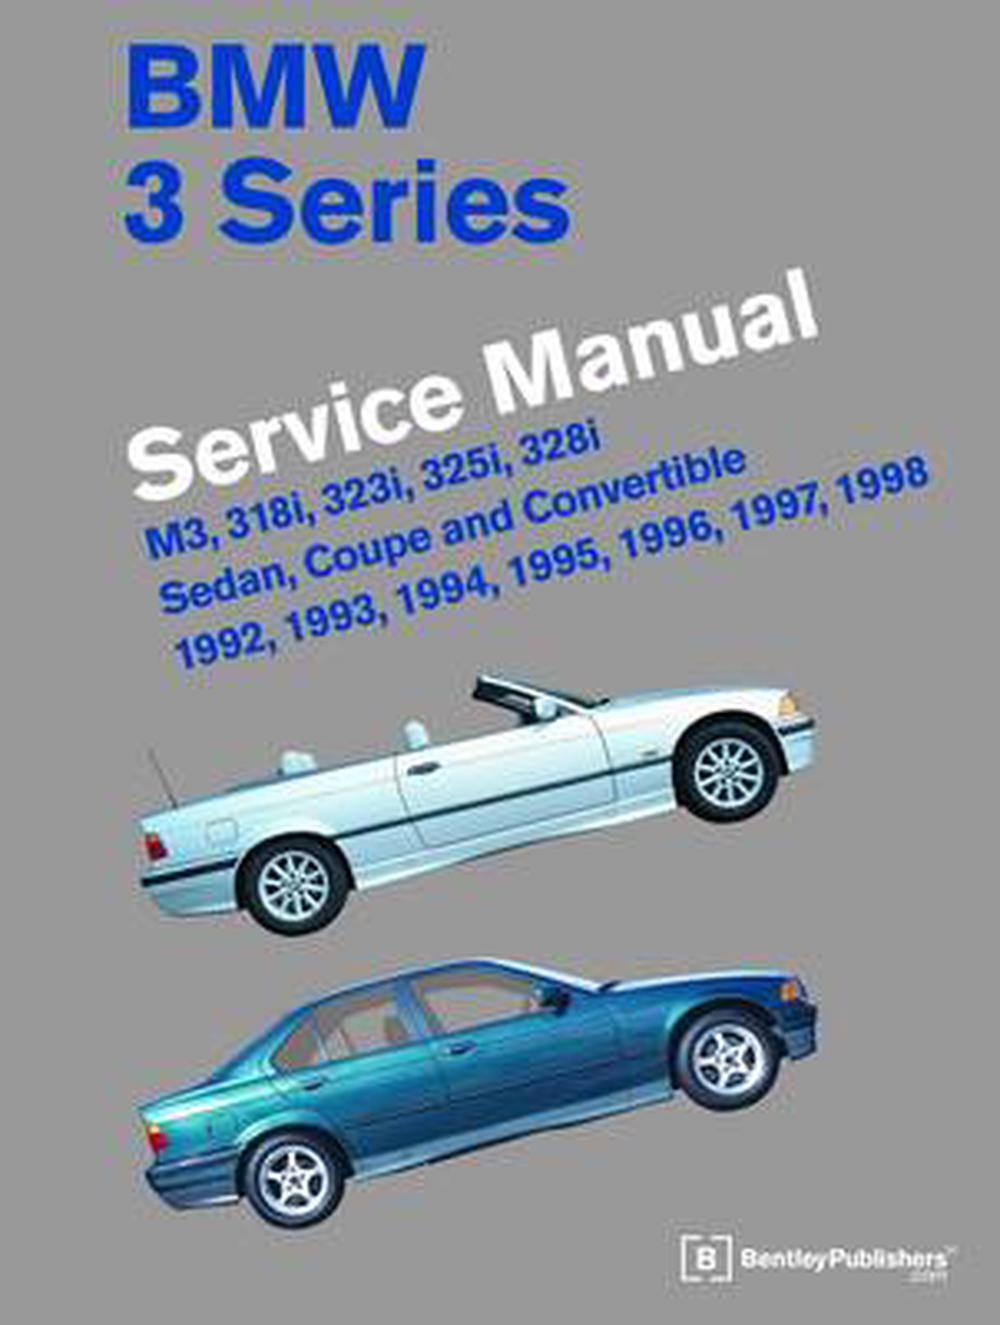 bmw 3 series service manual m3 318i 323i 325i 328i sedan rh thenile com au BMW Car Problems 1990 328I